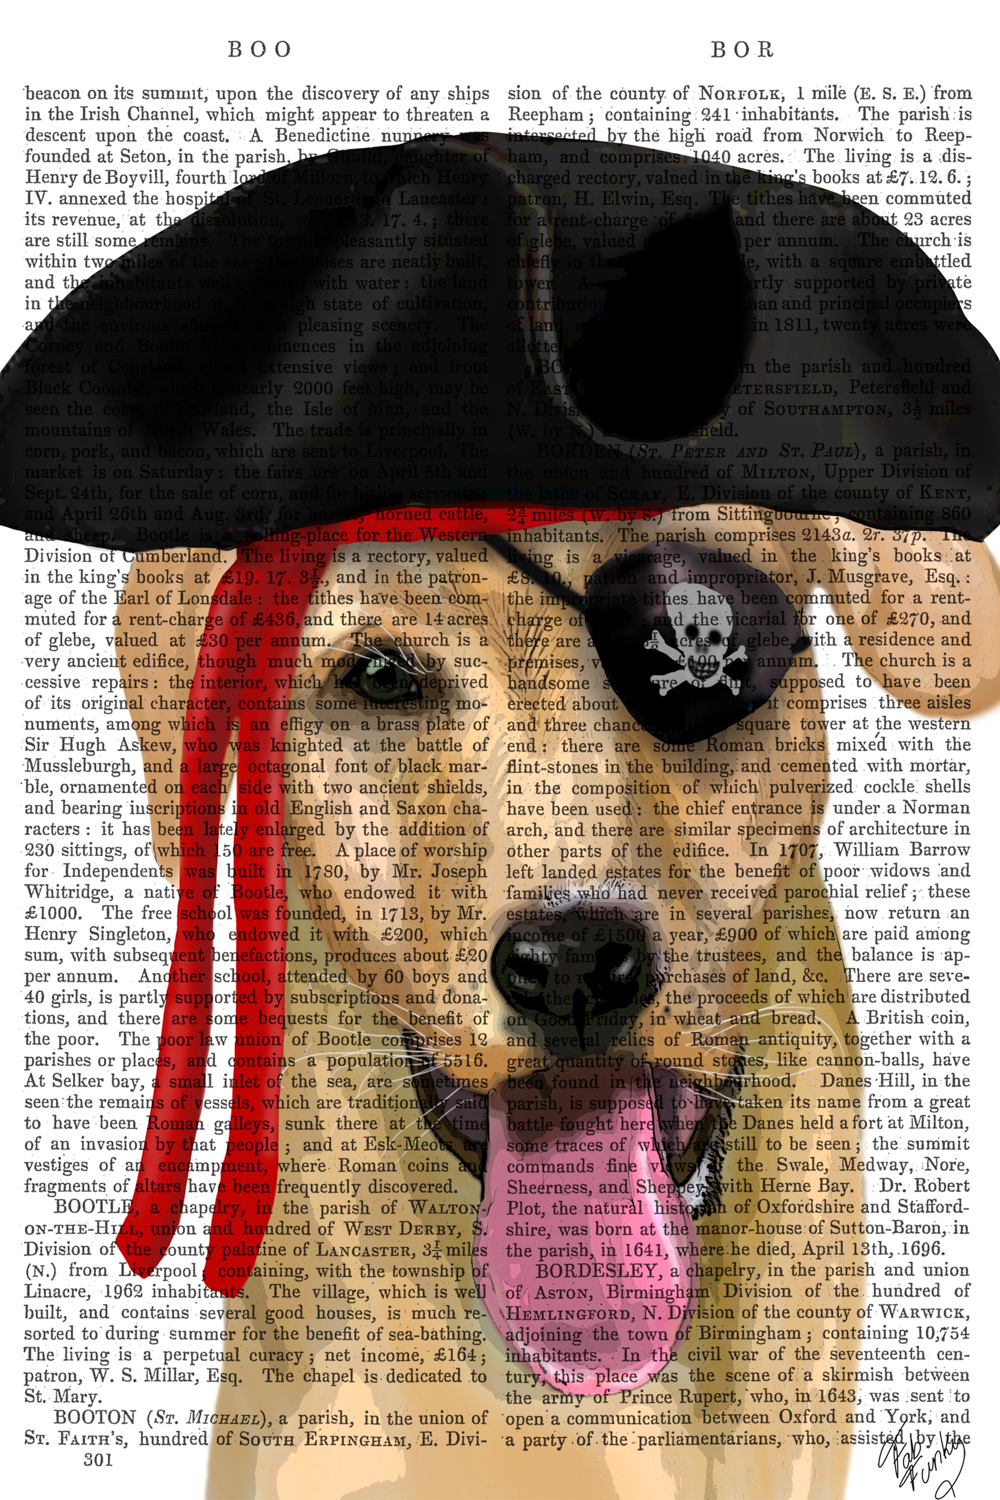 a yellow lab with their tongue out wearing an eye patch and pirate hat on a page of printed text